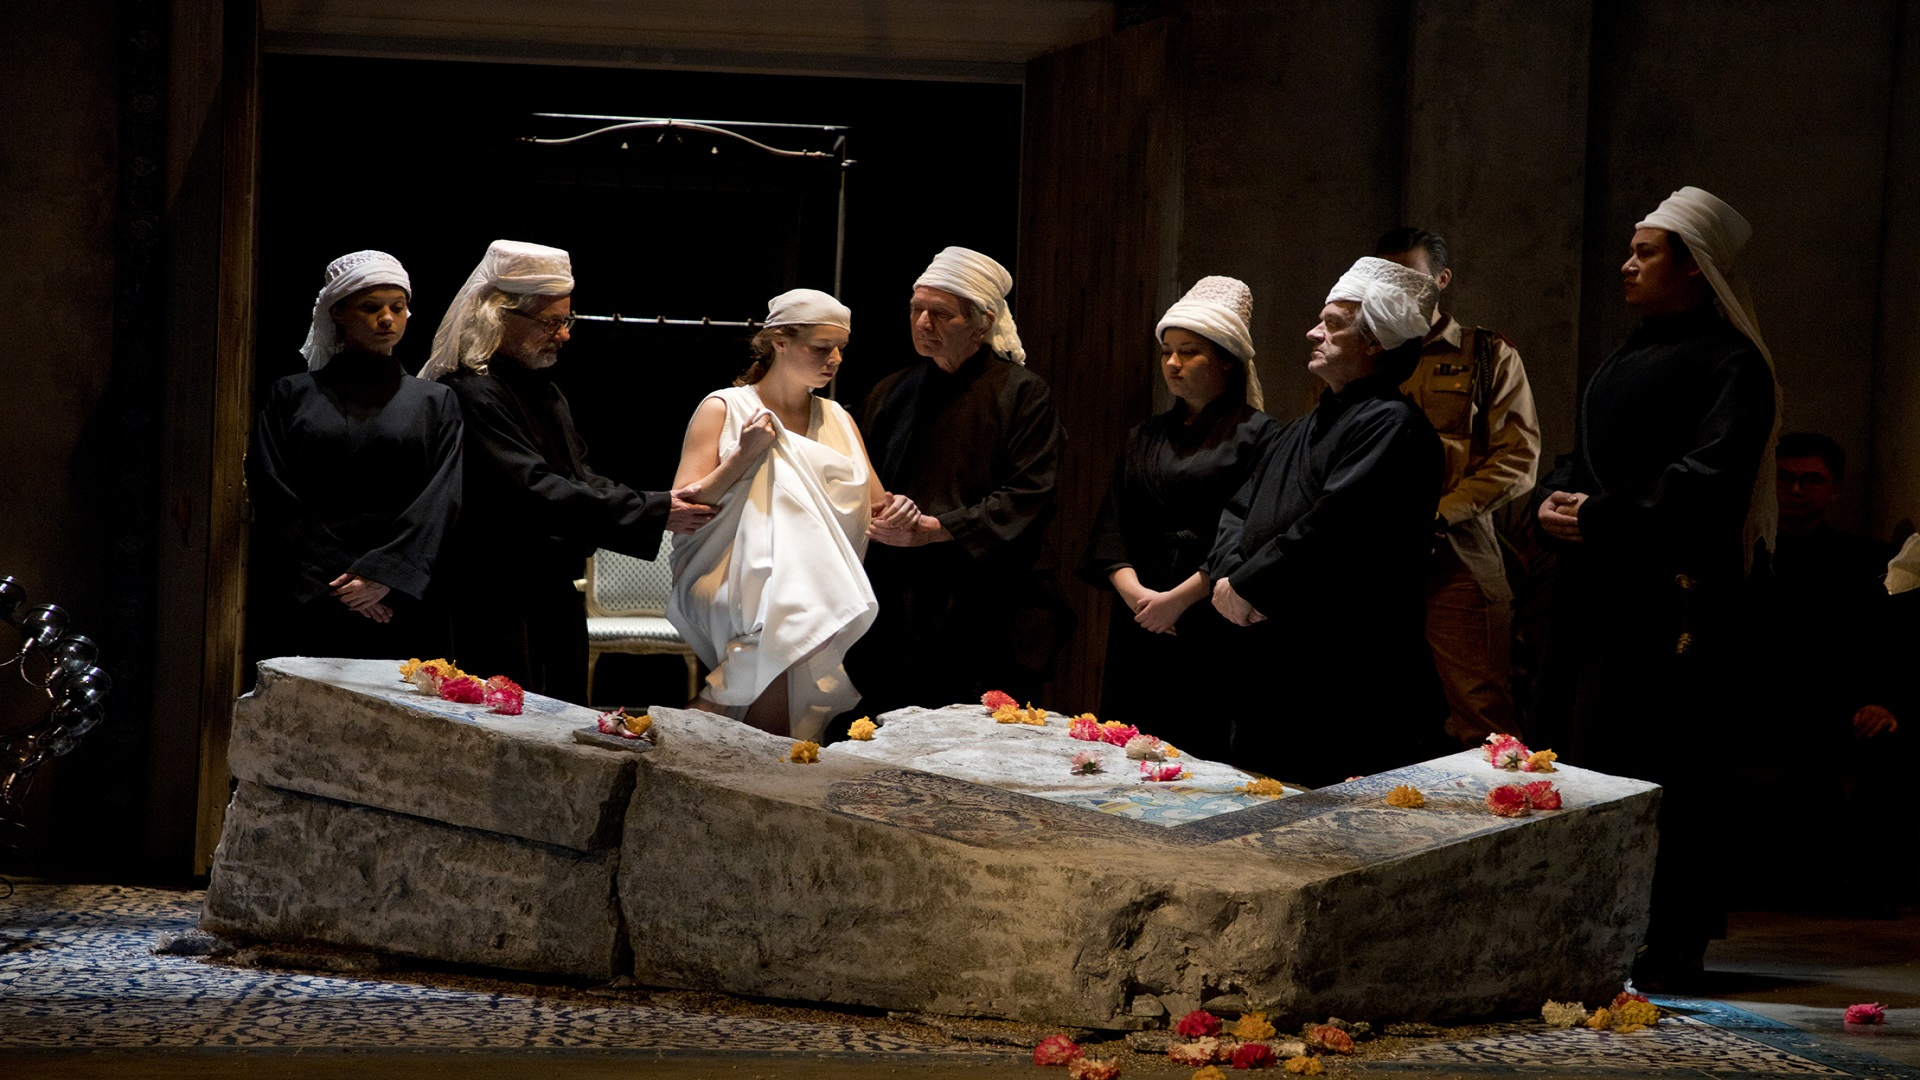 Mitridate-Opera-by-Porpora-Stage-Director-Jacopo-Spirei-2